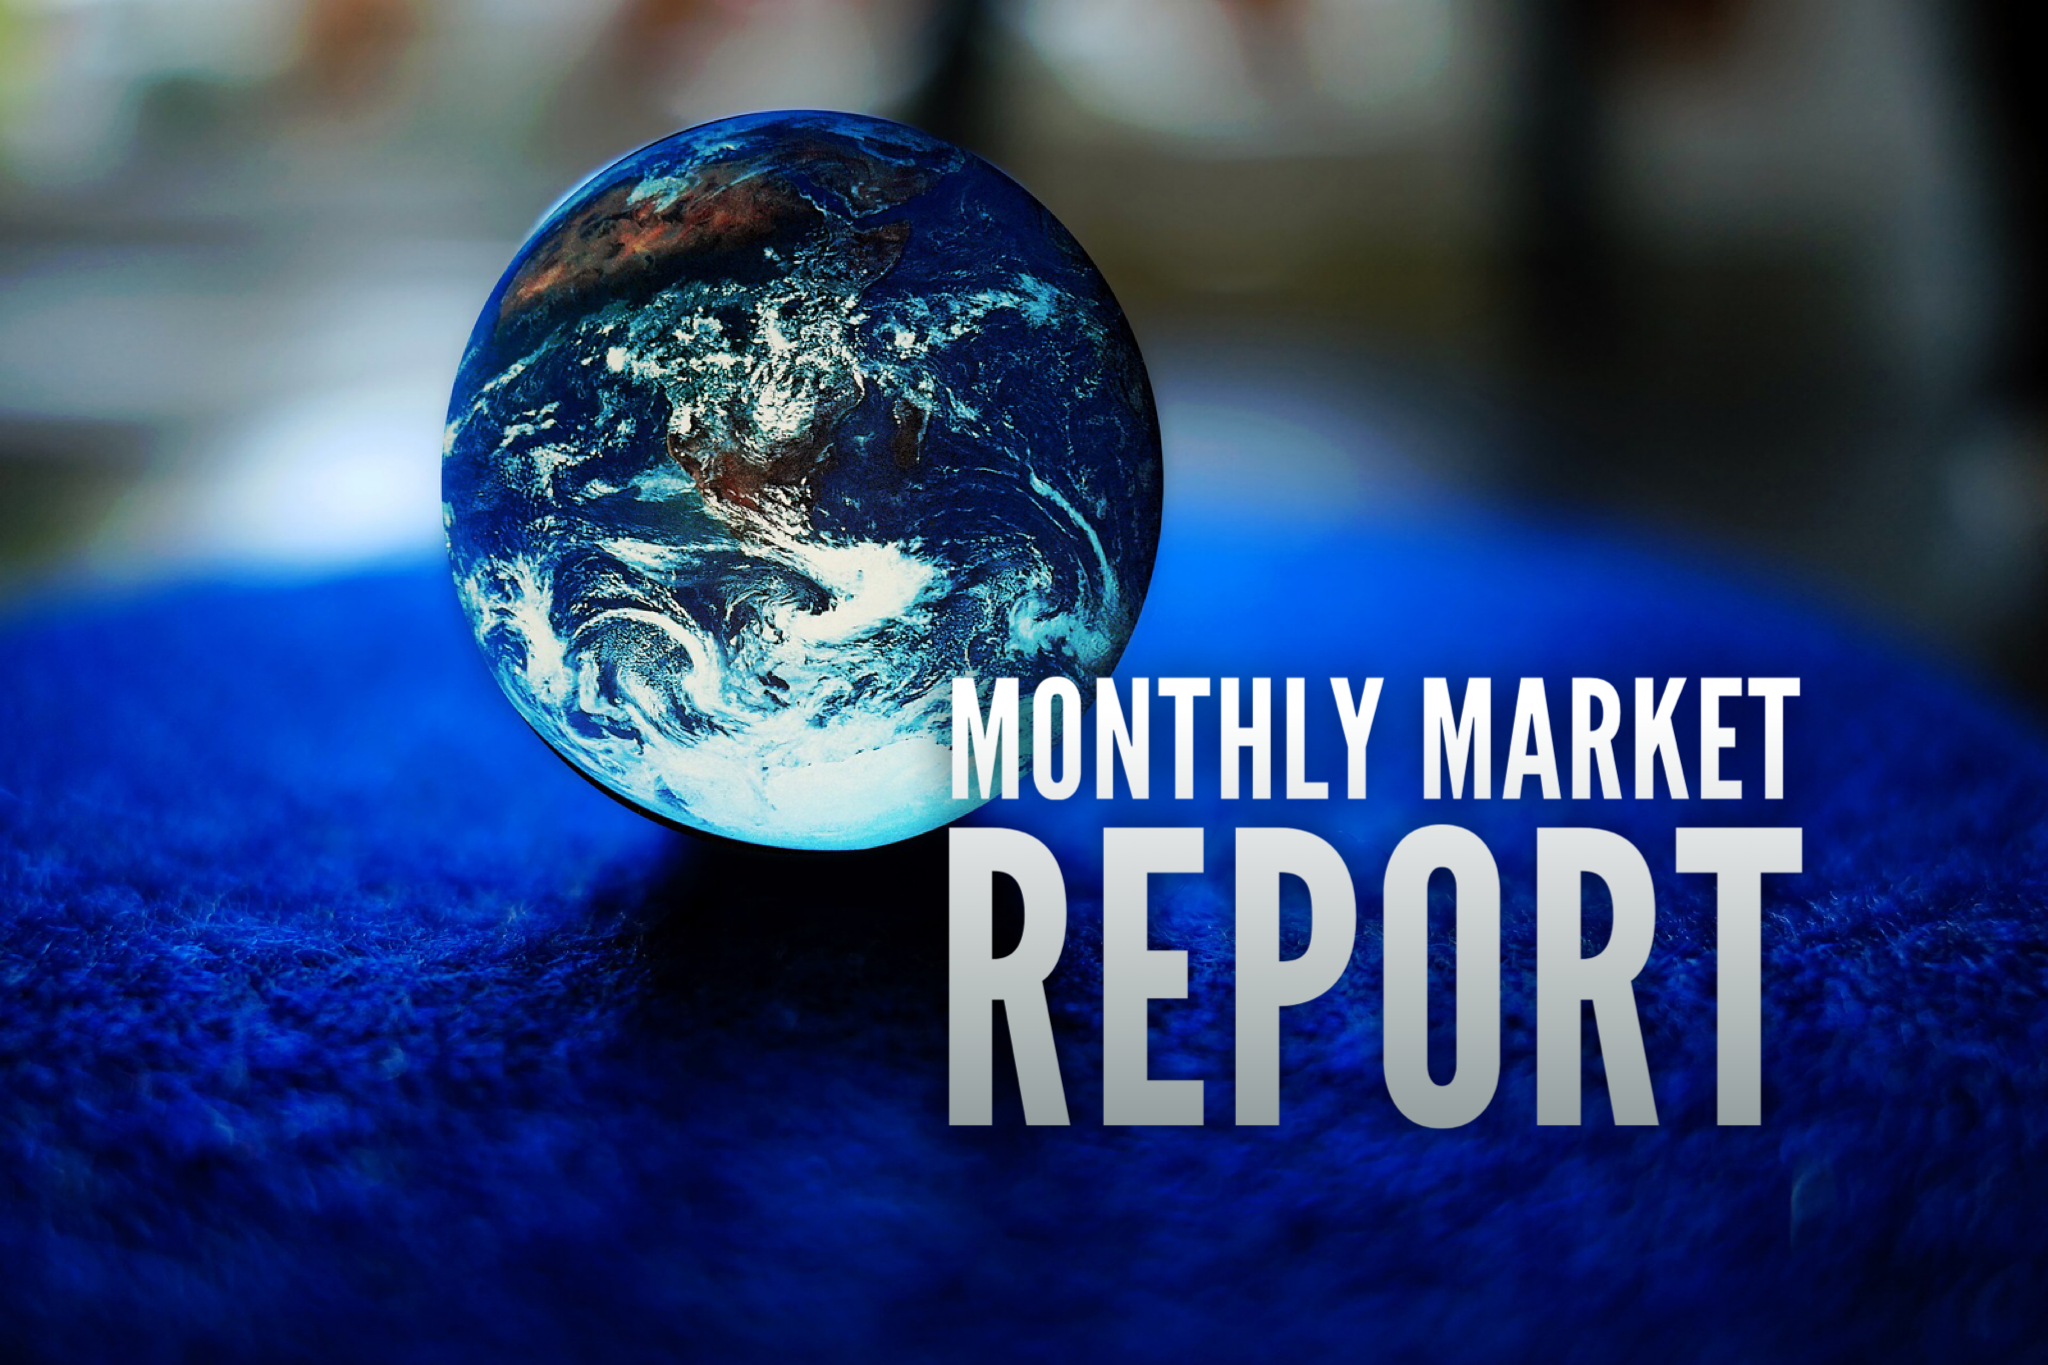 MARKET REPORT: March 2017